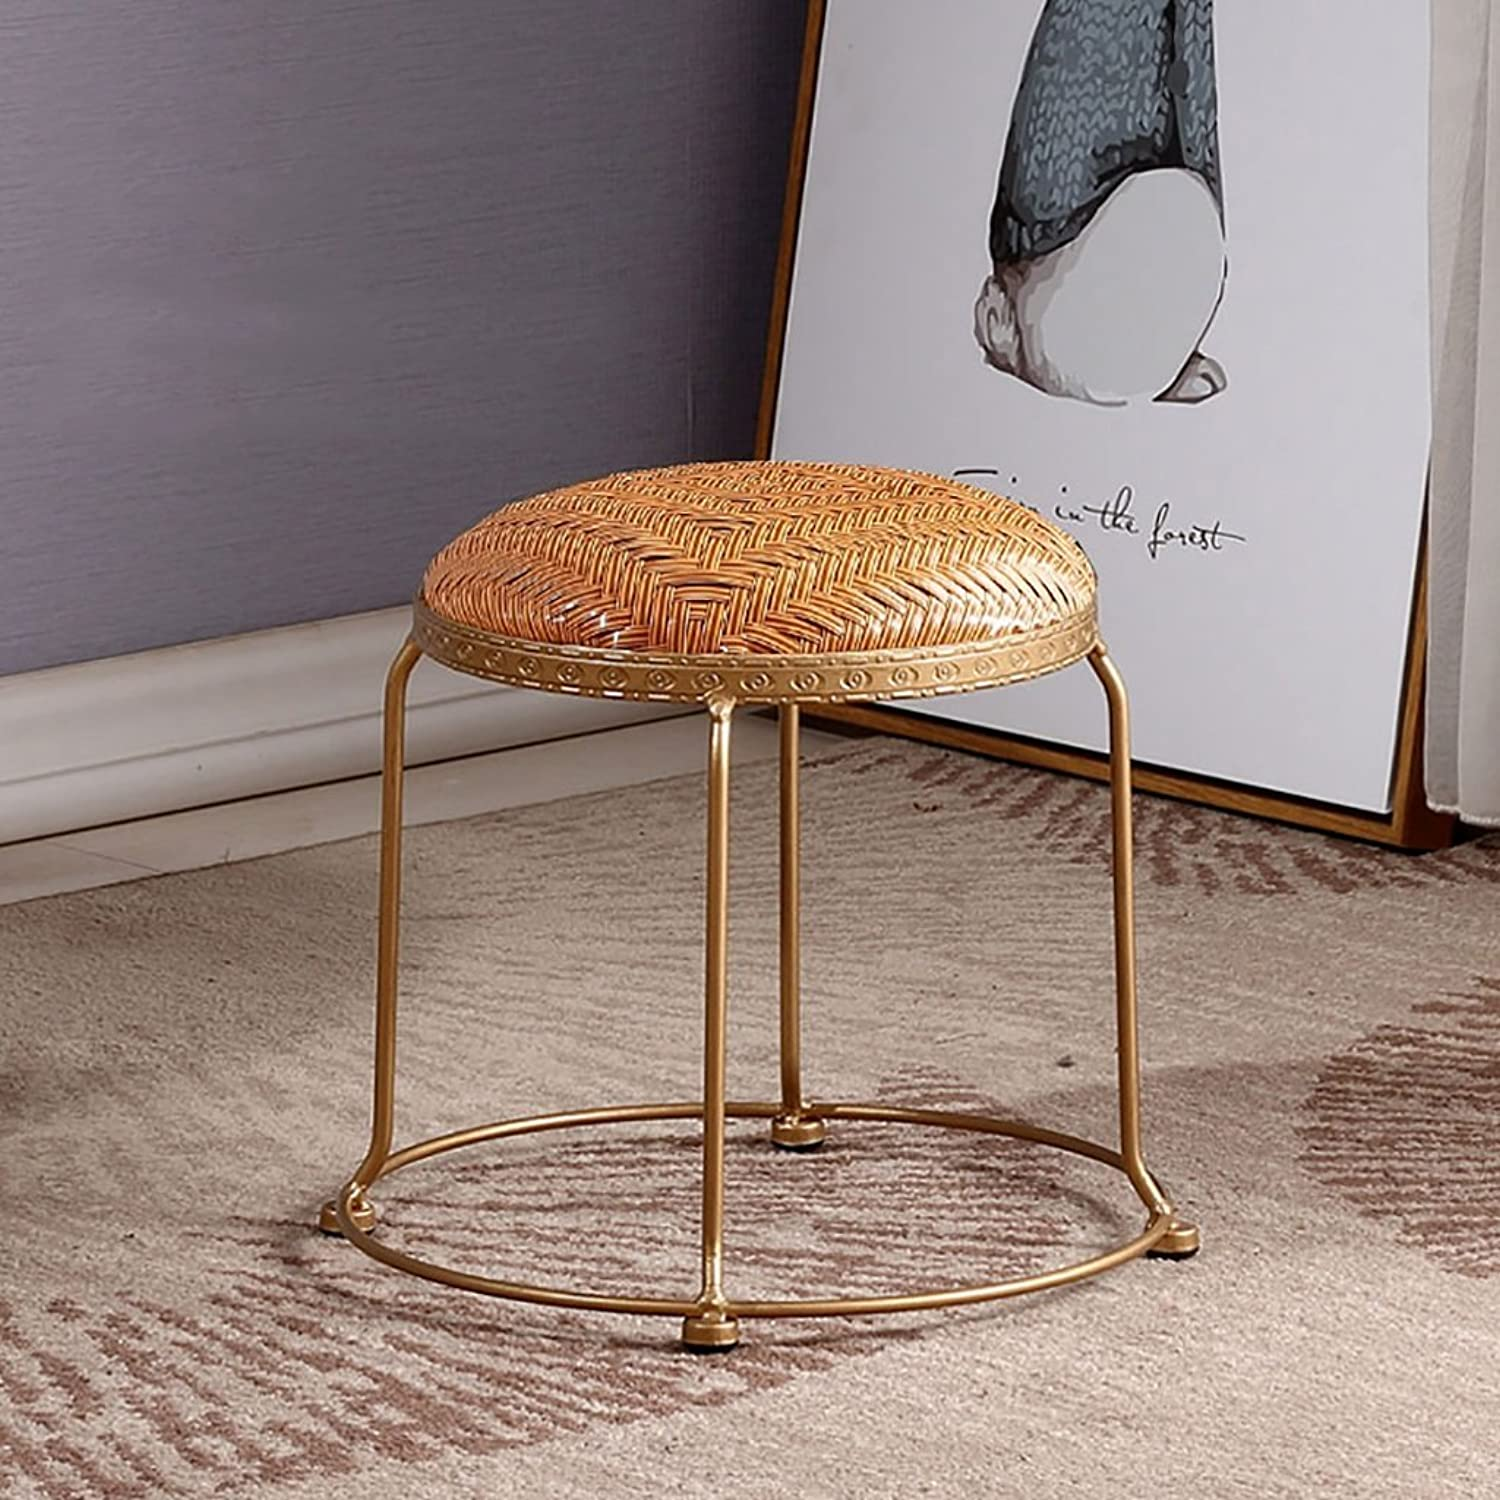 AIDELAI Bar Stool Chair- Fashion Rattan Stool Rattan Stool Home Dining Stool Rattan Rattan Rattan Stool Dining Chair Bread Stool Leisure Stool Saddle Seat (color   D, Size   30  30cm)